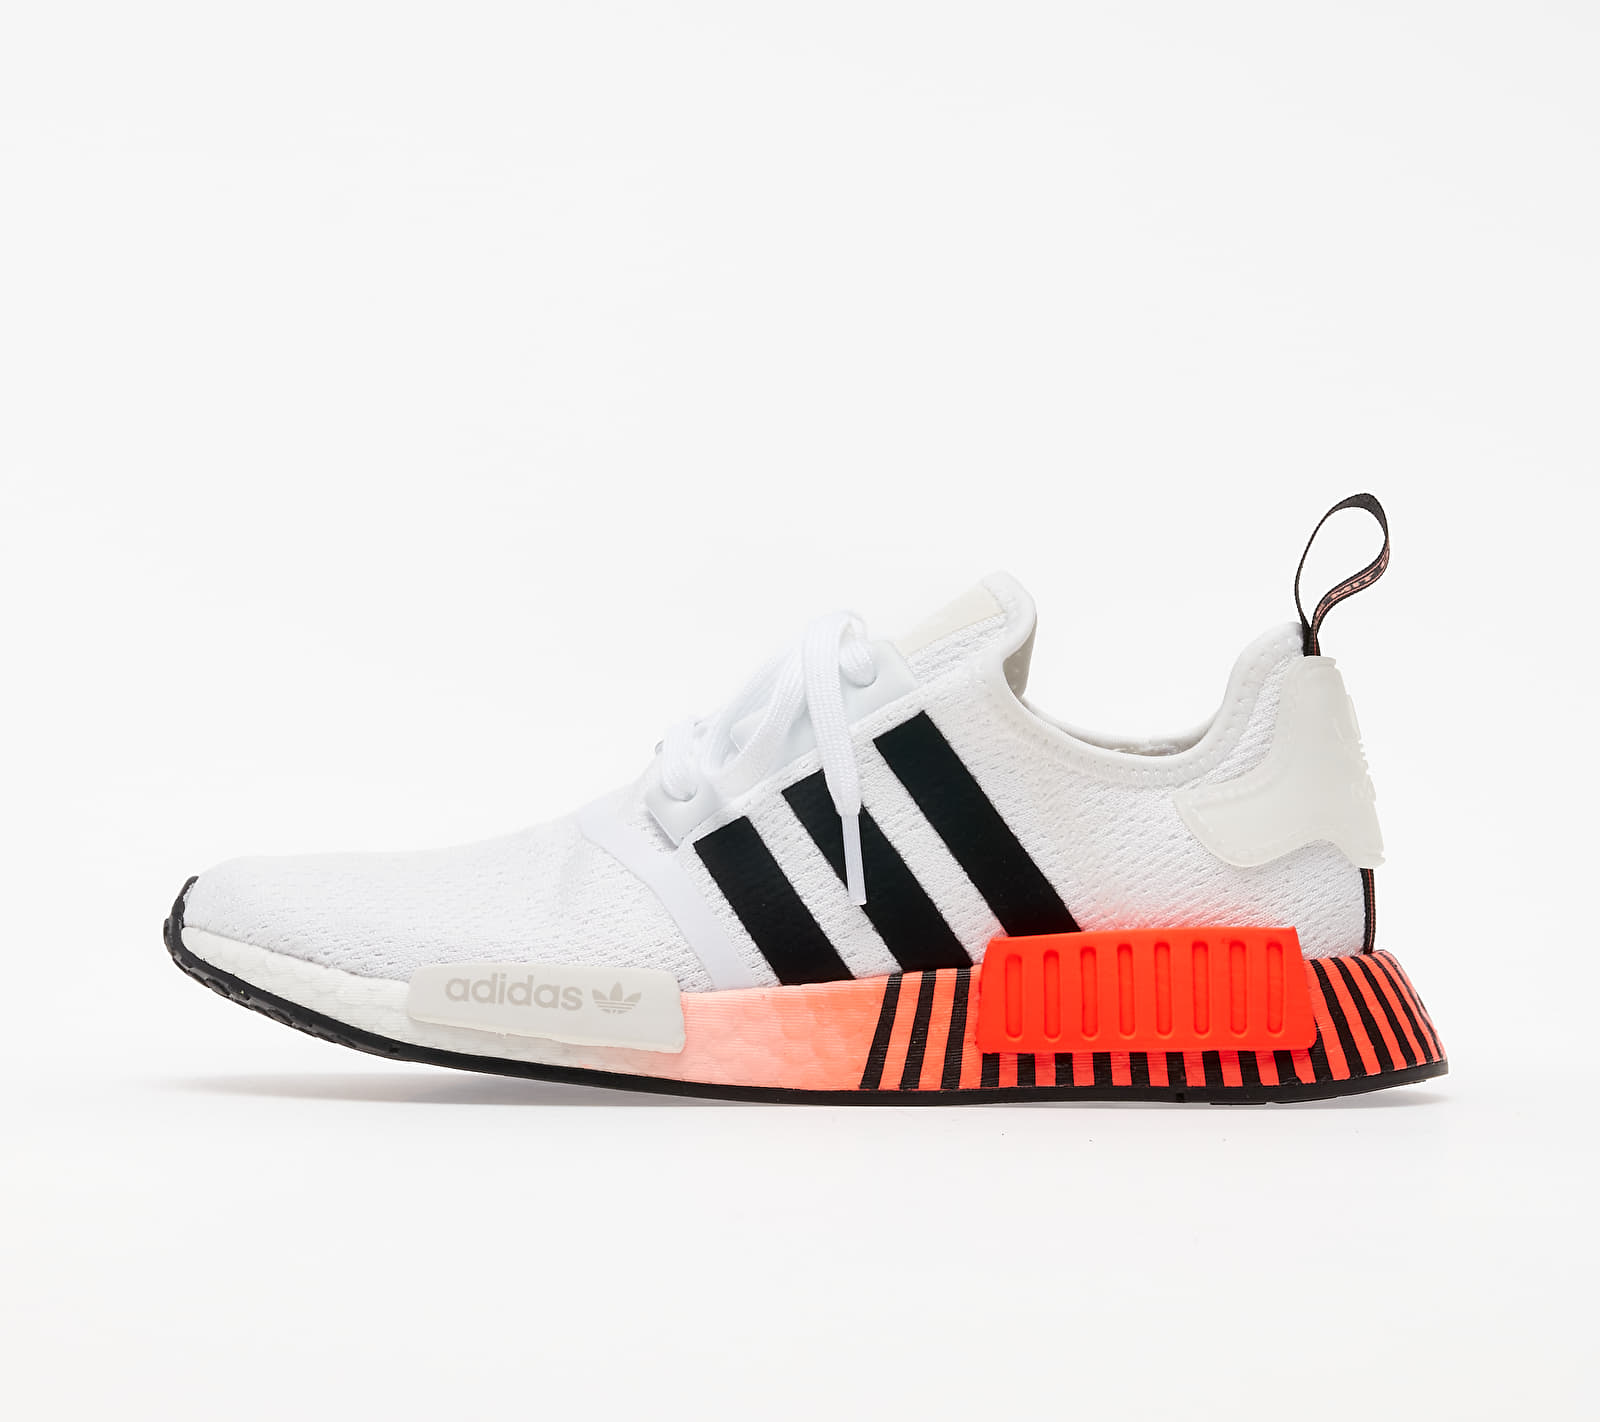 adidas NMD_R1 Ftw White/ Core Black/ Solid Red EUR 40